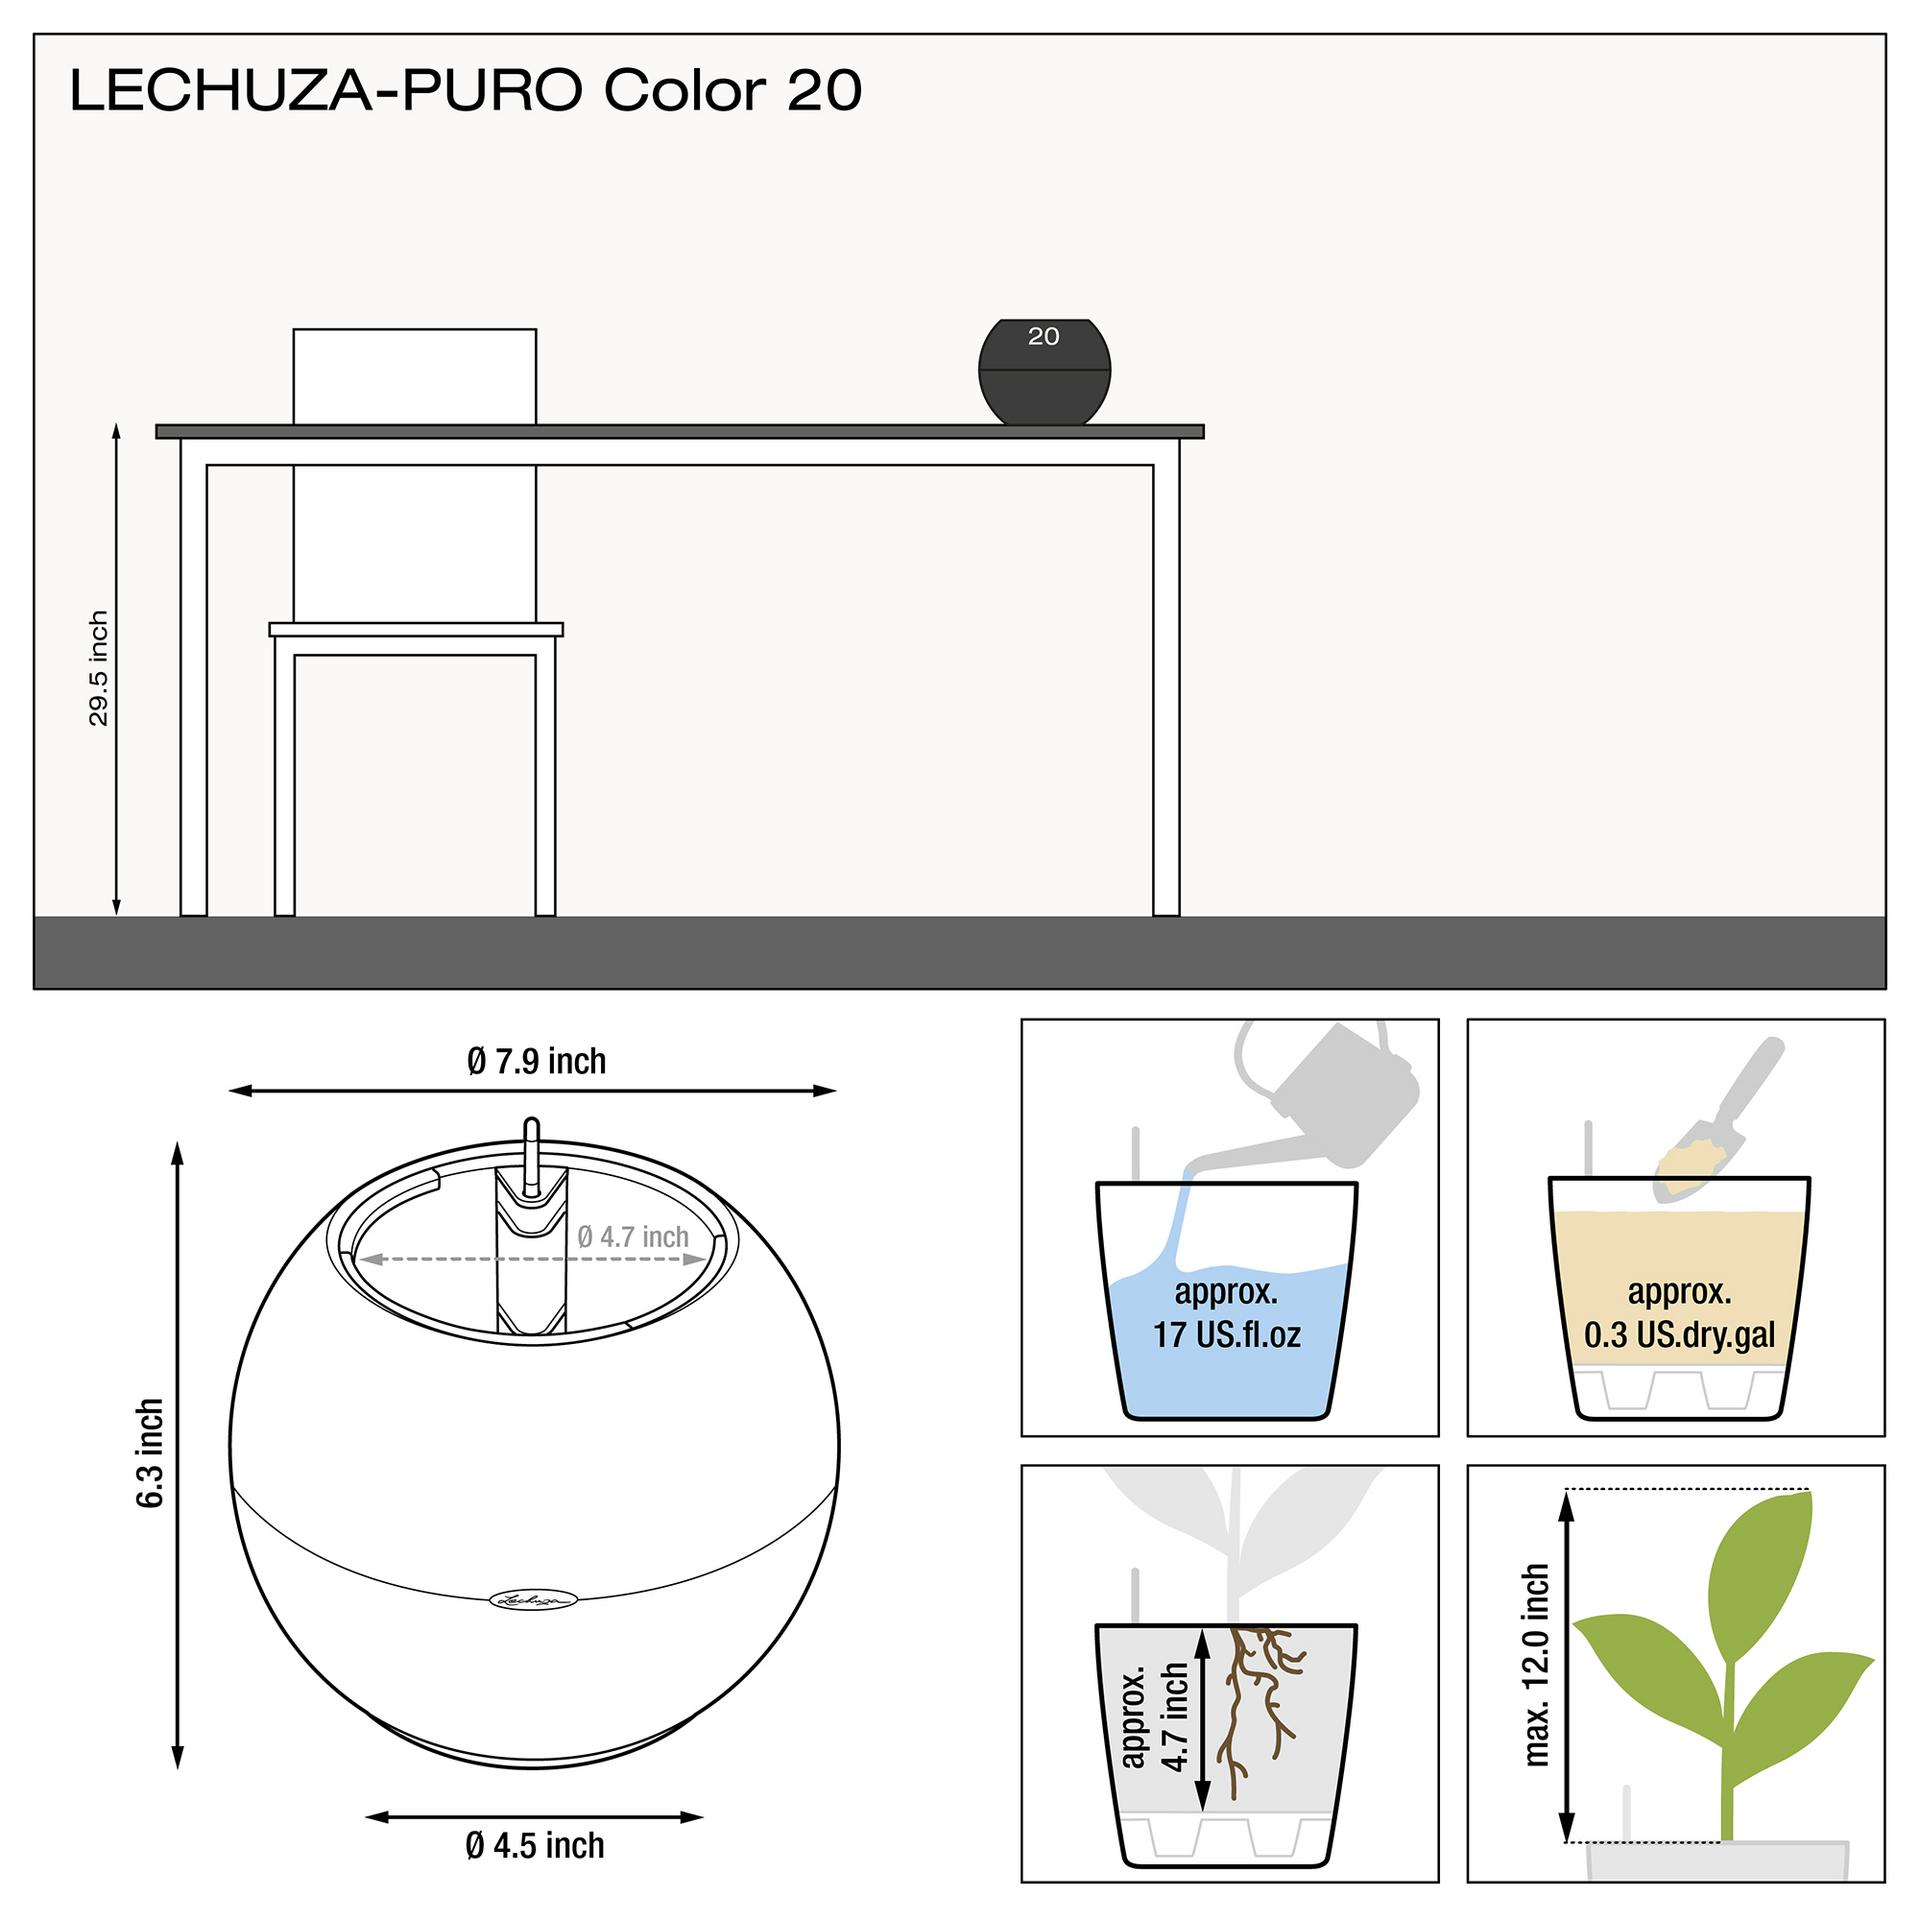 le_puro-color20_product_addi_nz_us